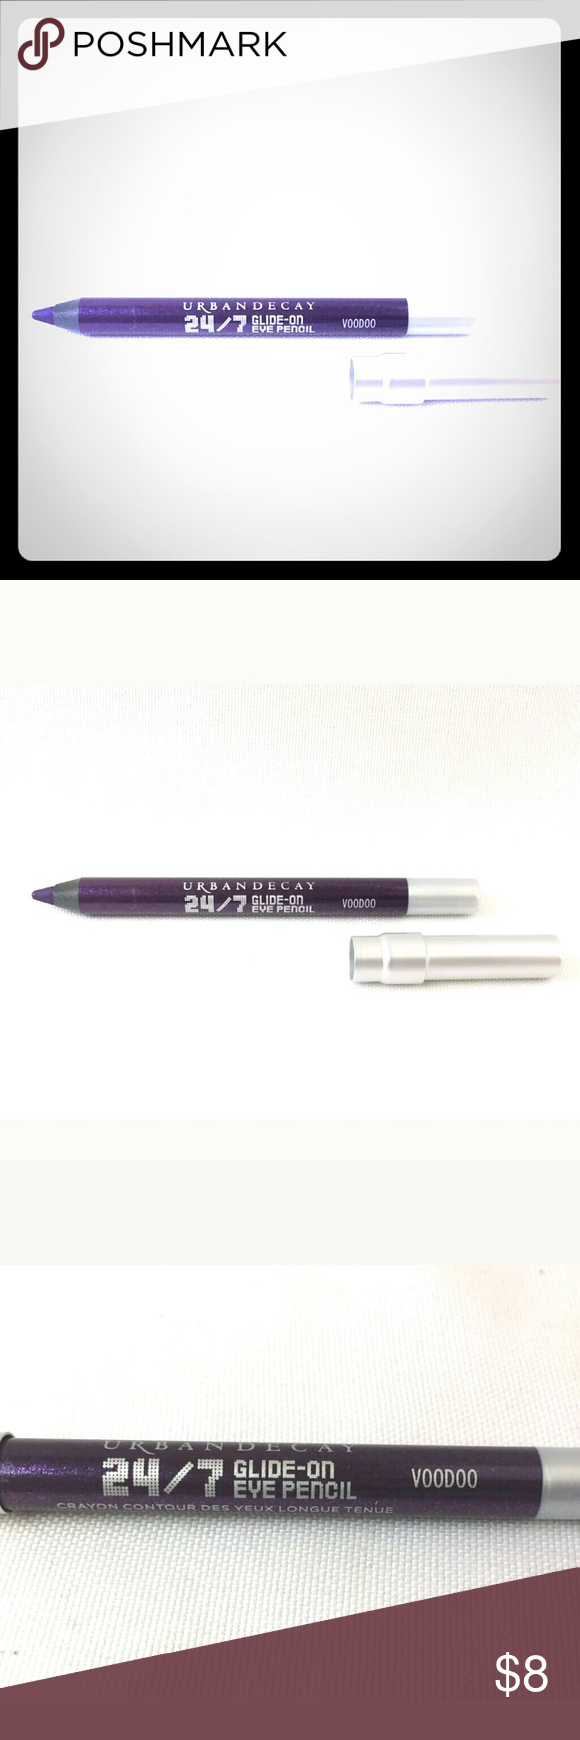 New Urban Decay 24/7 Travel Size Eyeliner Brand New Urban Decay 24/7 Glide On Travel Size Eyeliner in colors  Perversion Black or Slate Gray.   All reasonable offers are considered and appreciated No trades Urban Decay Makeup Eyeliner